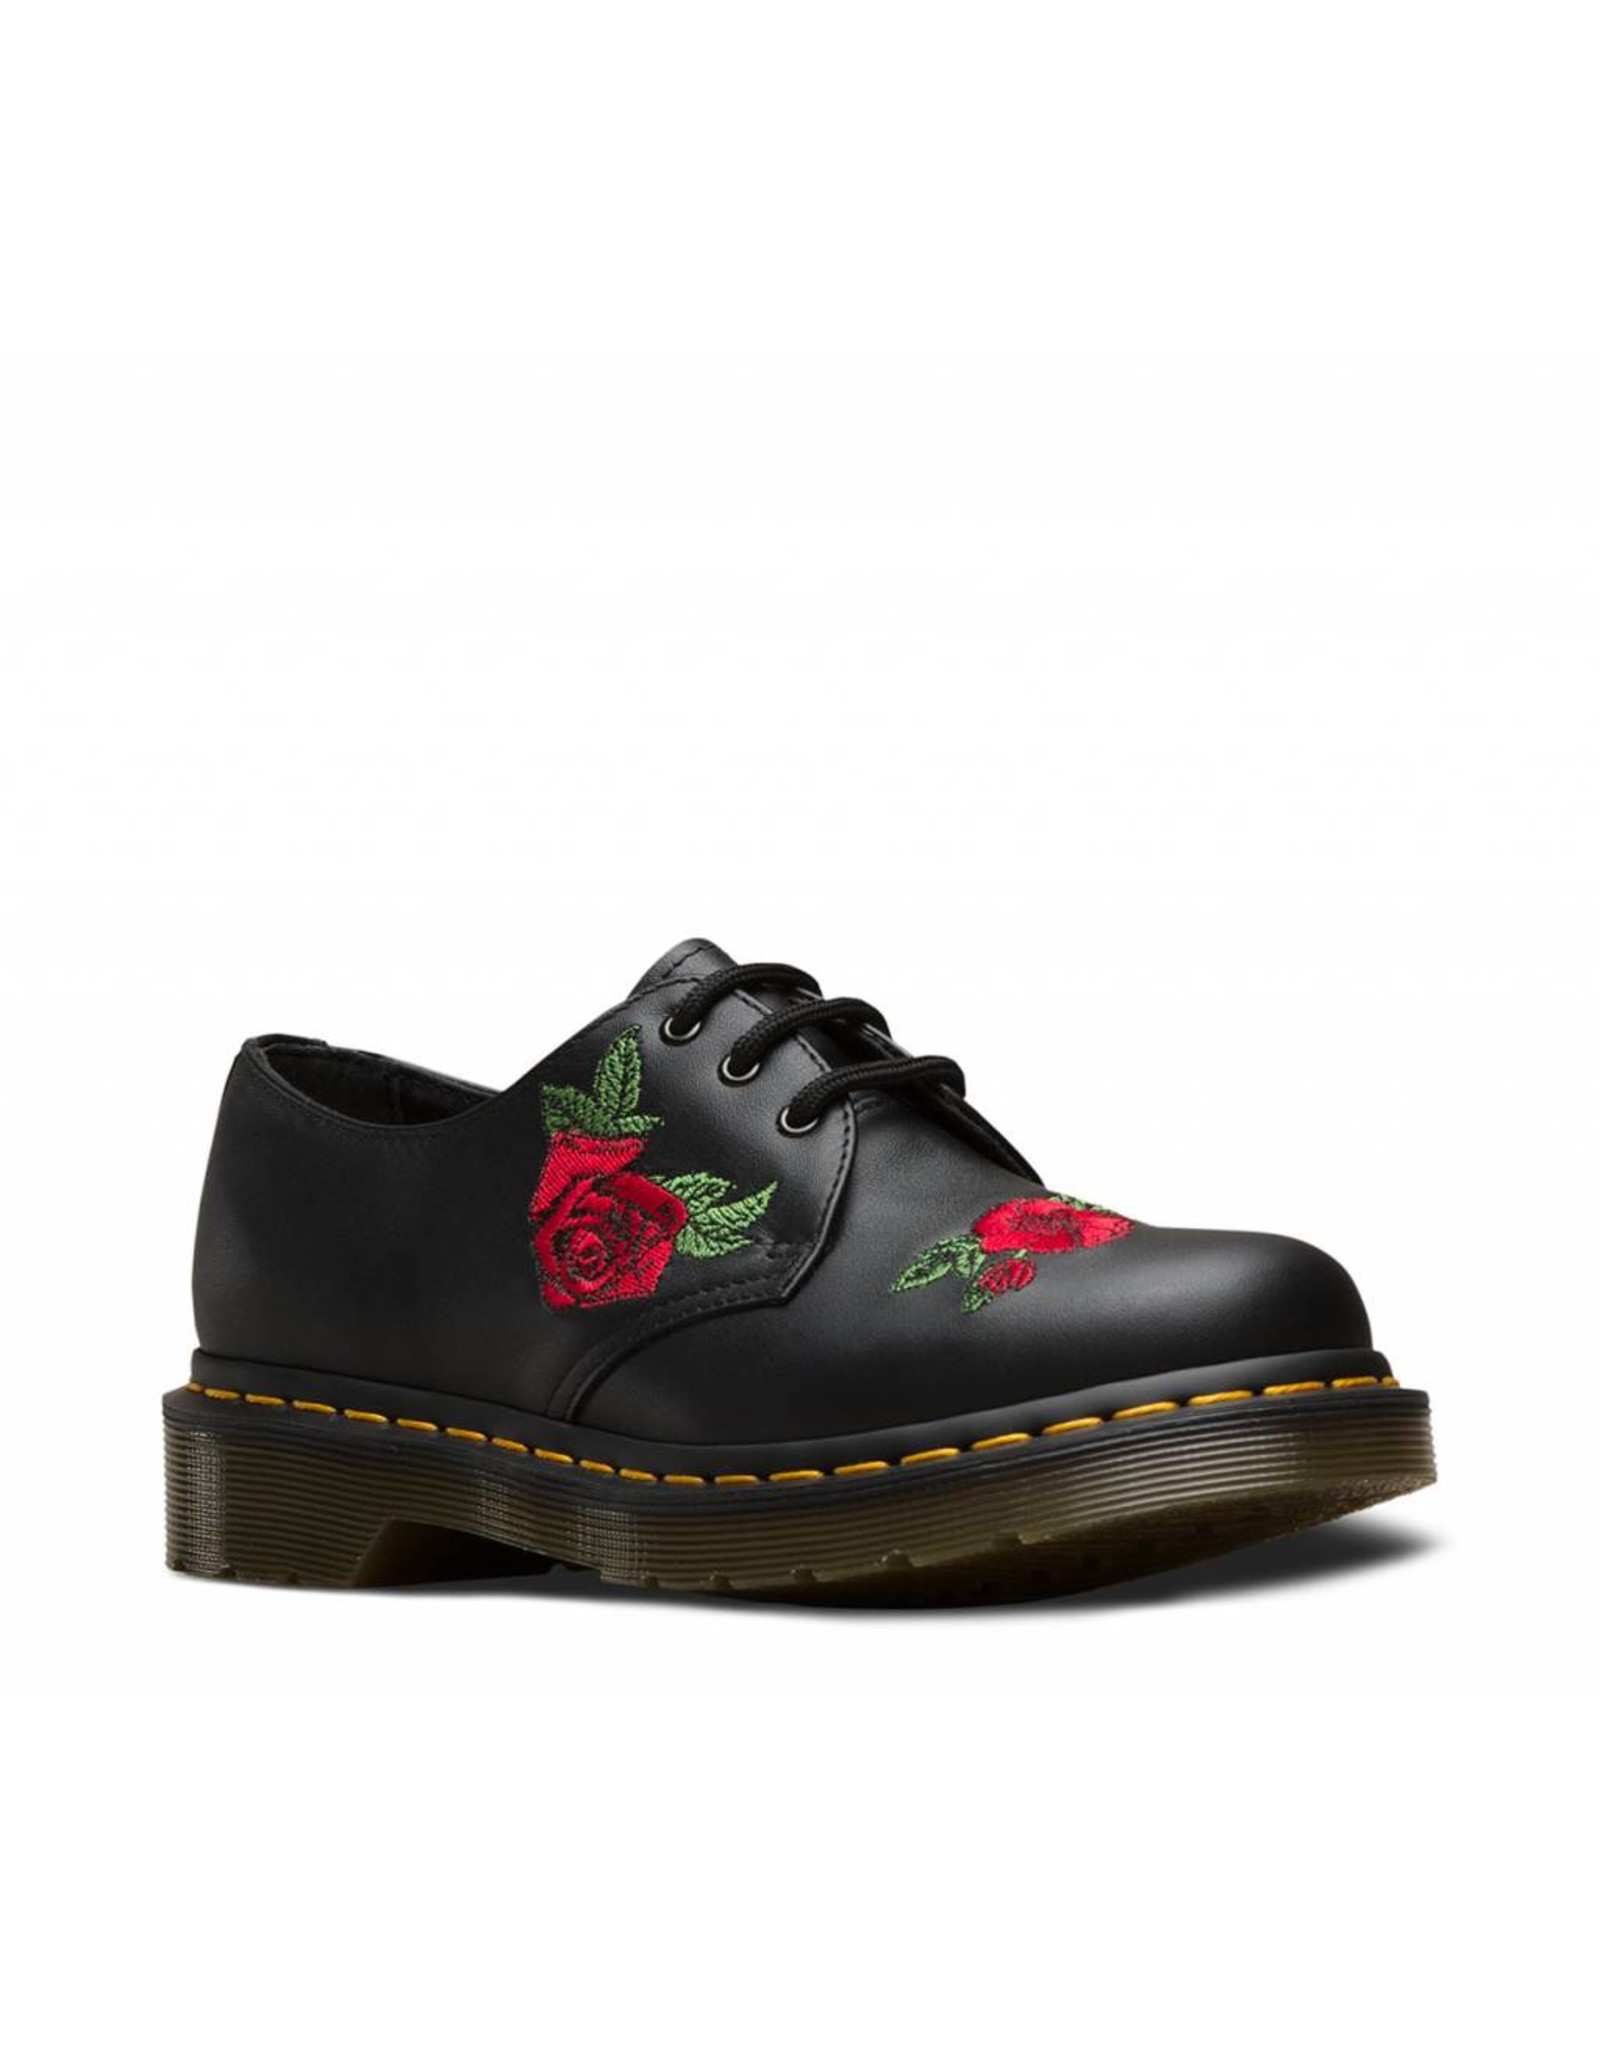 DR. MARTENS 1461 VONDA BLACK SOFTY T 301RO-R24723001